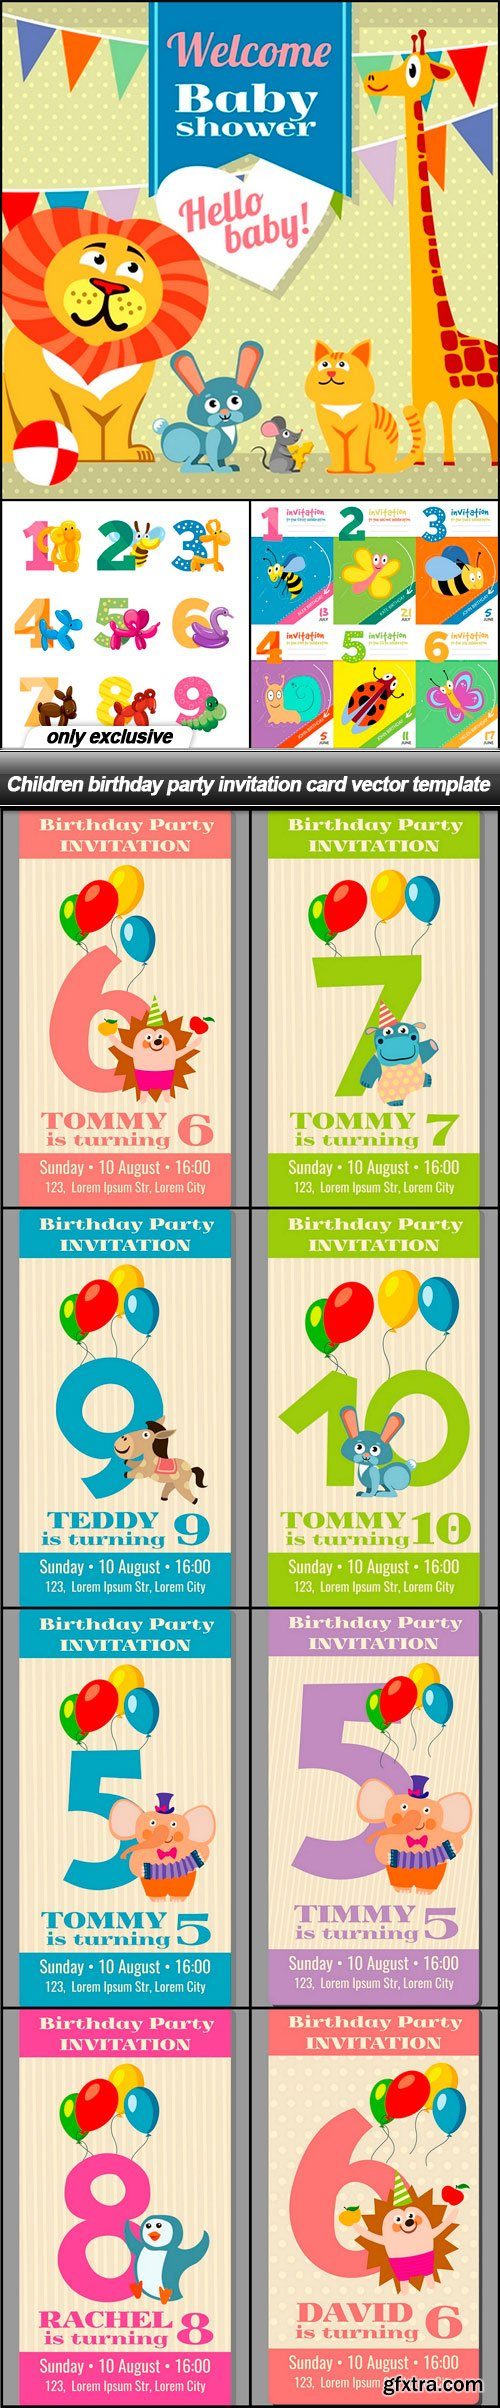 Children birthday party invitation card vector template - 11 EPS